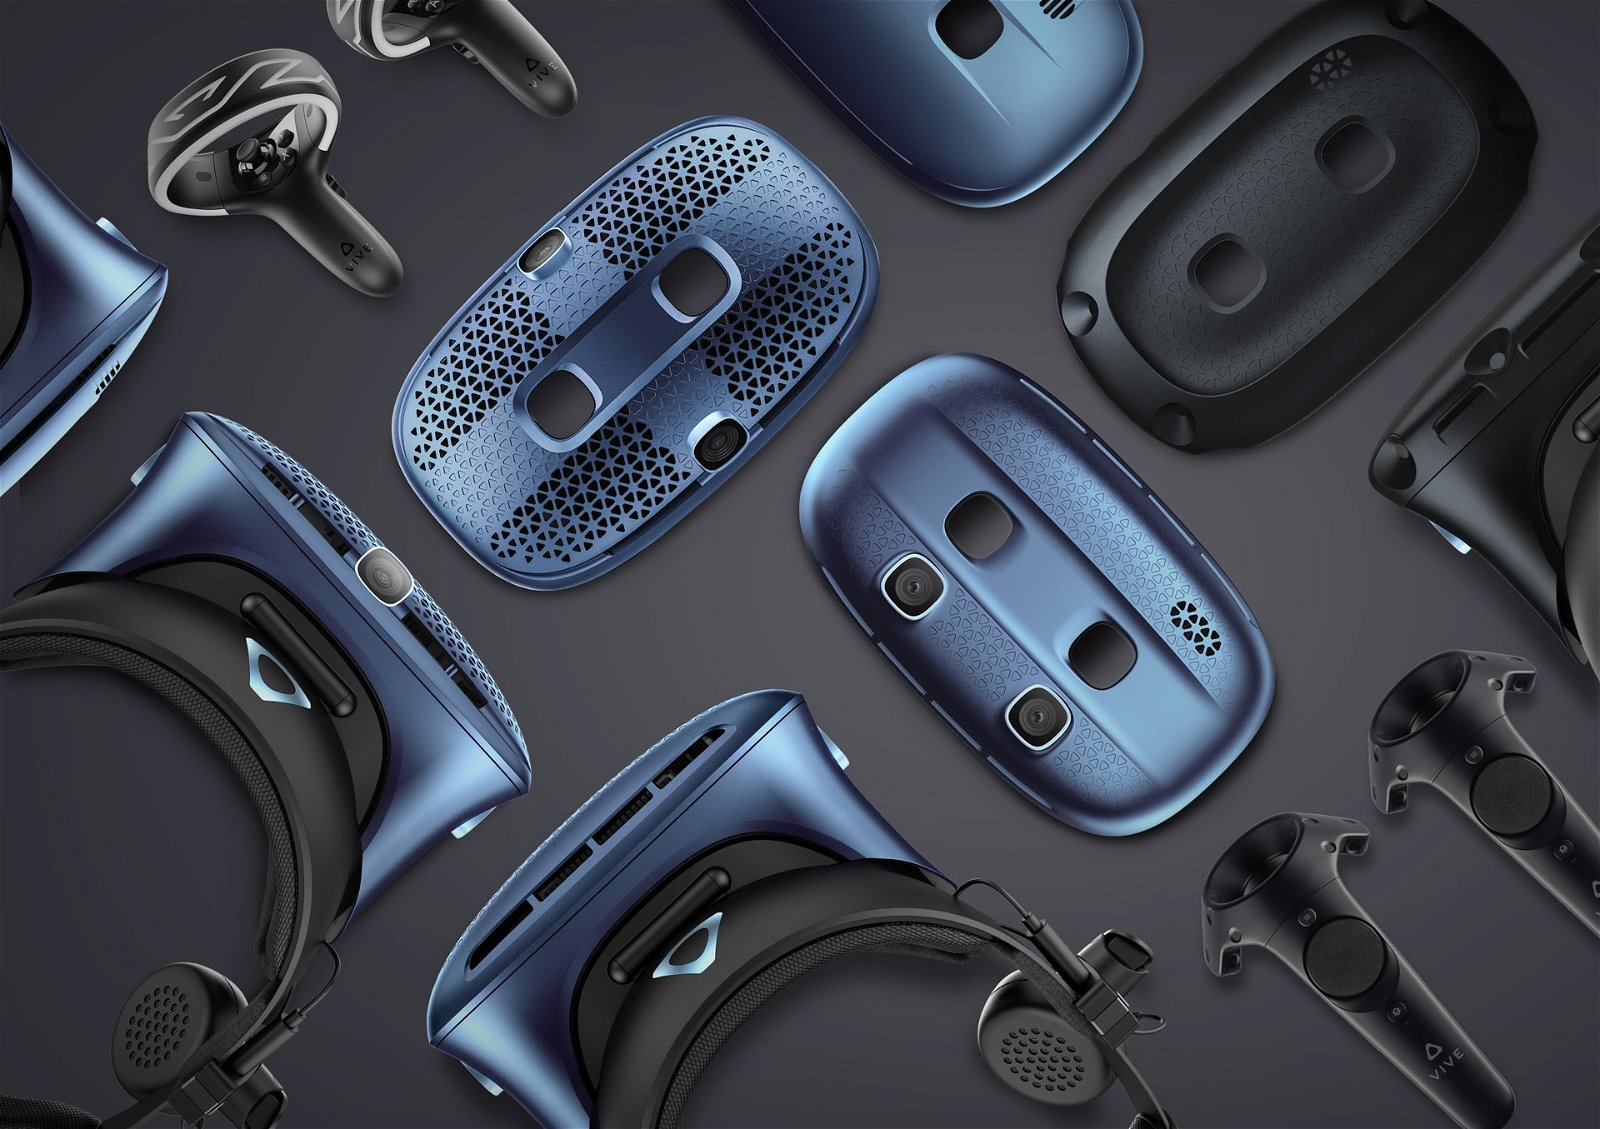 HTC Vive Announces a New Lineup of VR Headsets, Expands the Cosmos Family With Entry and Enthusiast Level Devices 8